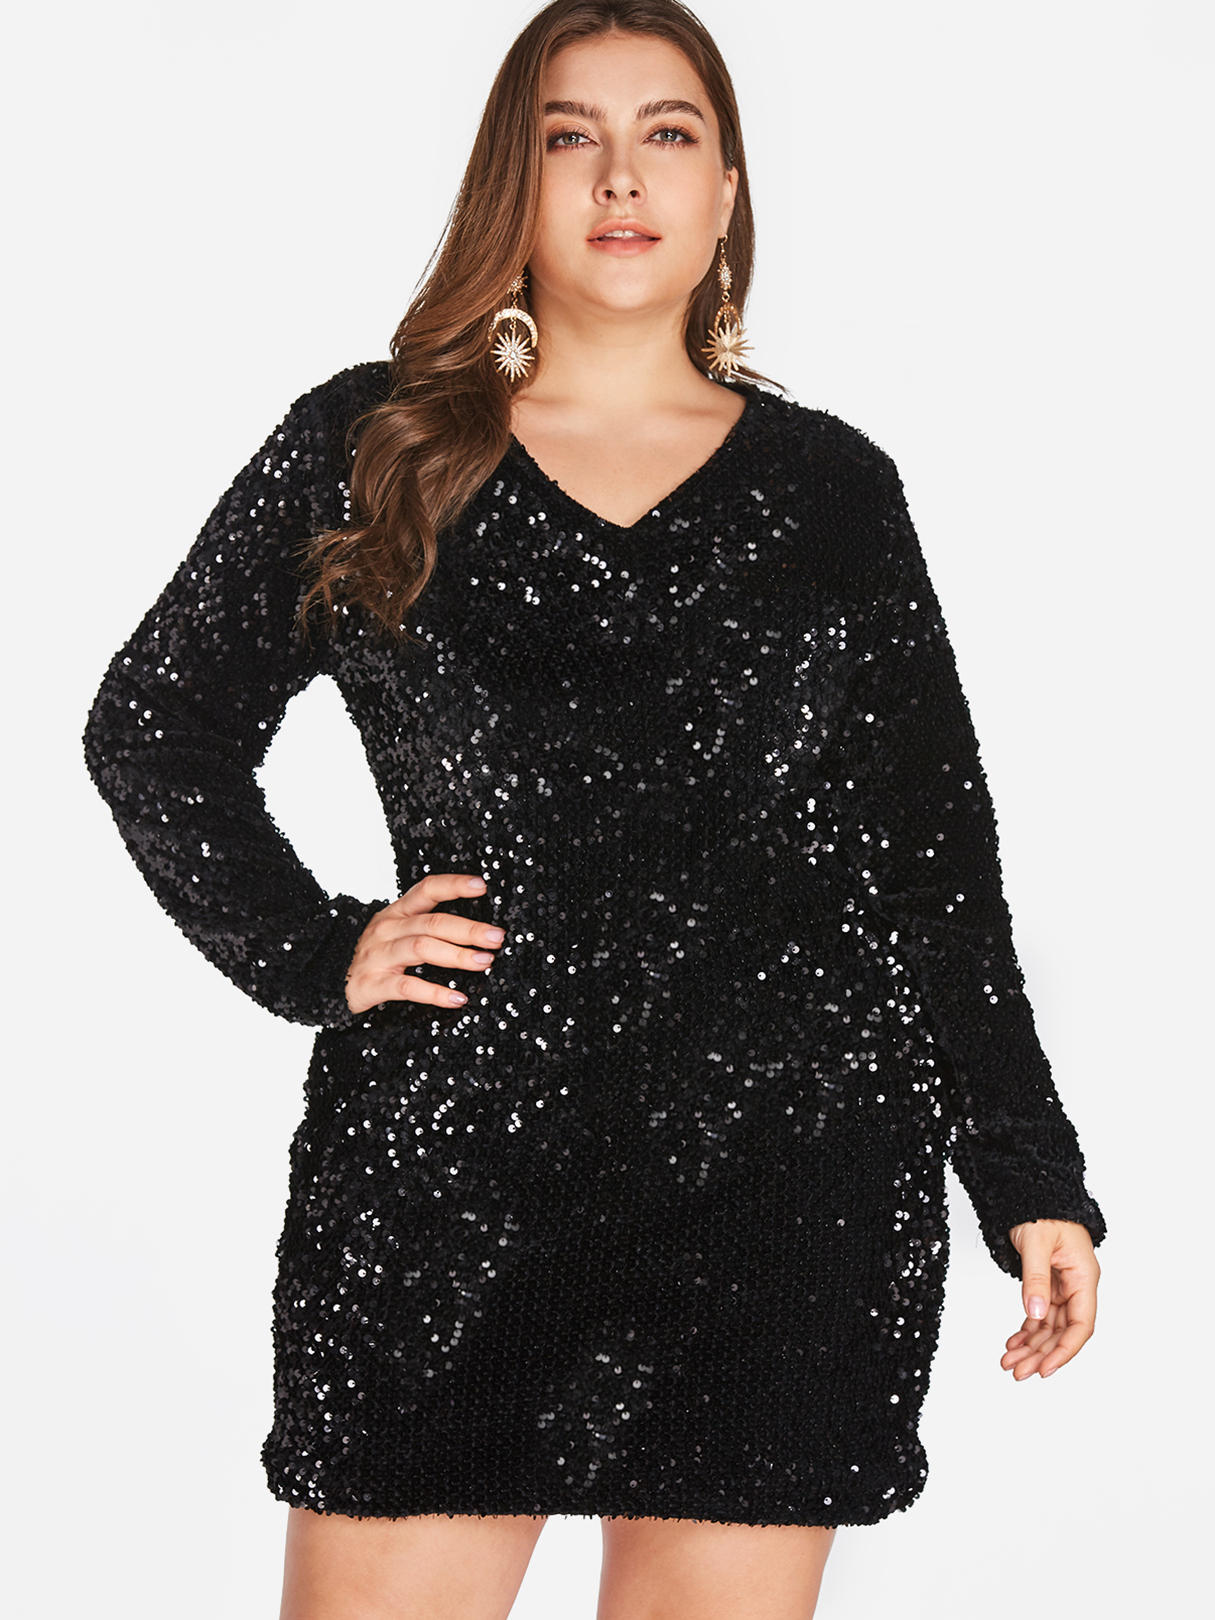 Plus Size Black Sequin Mini Dress